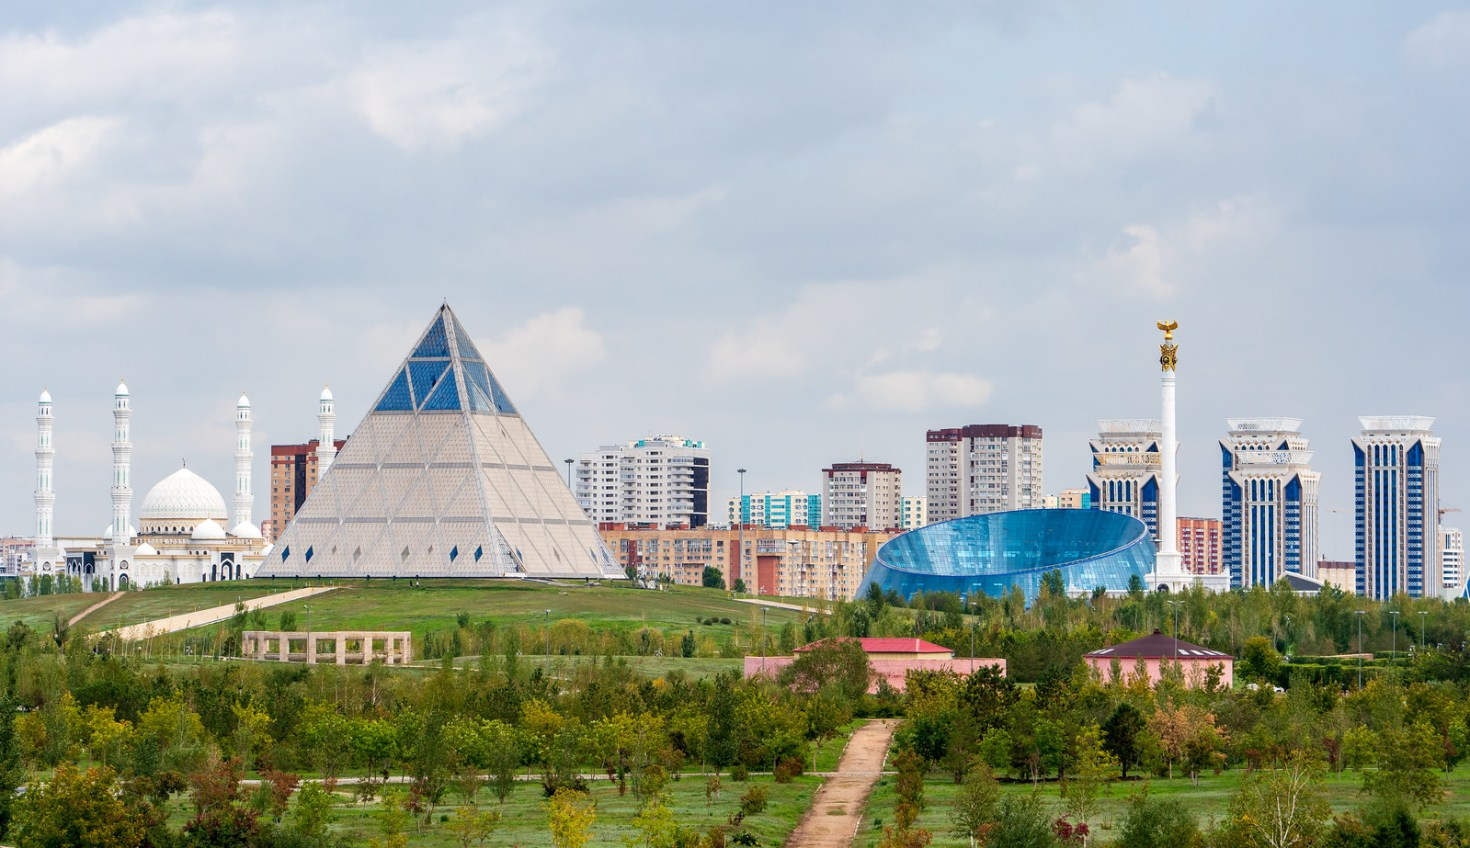 Architecture in Astana